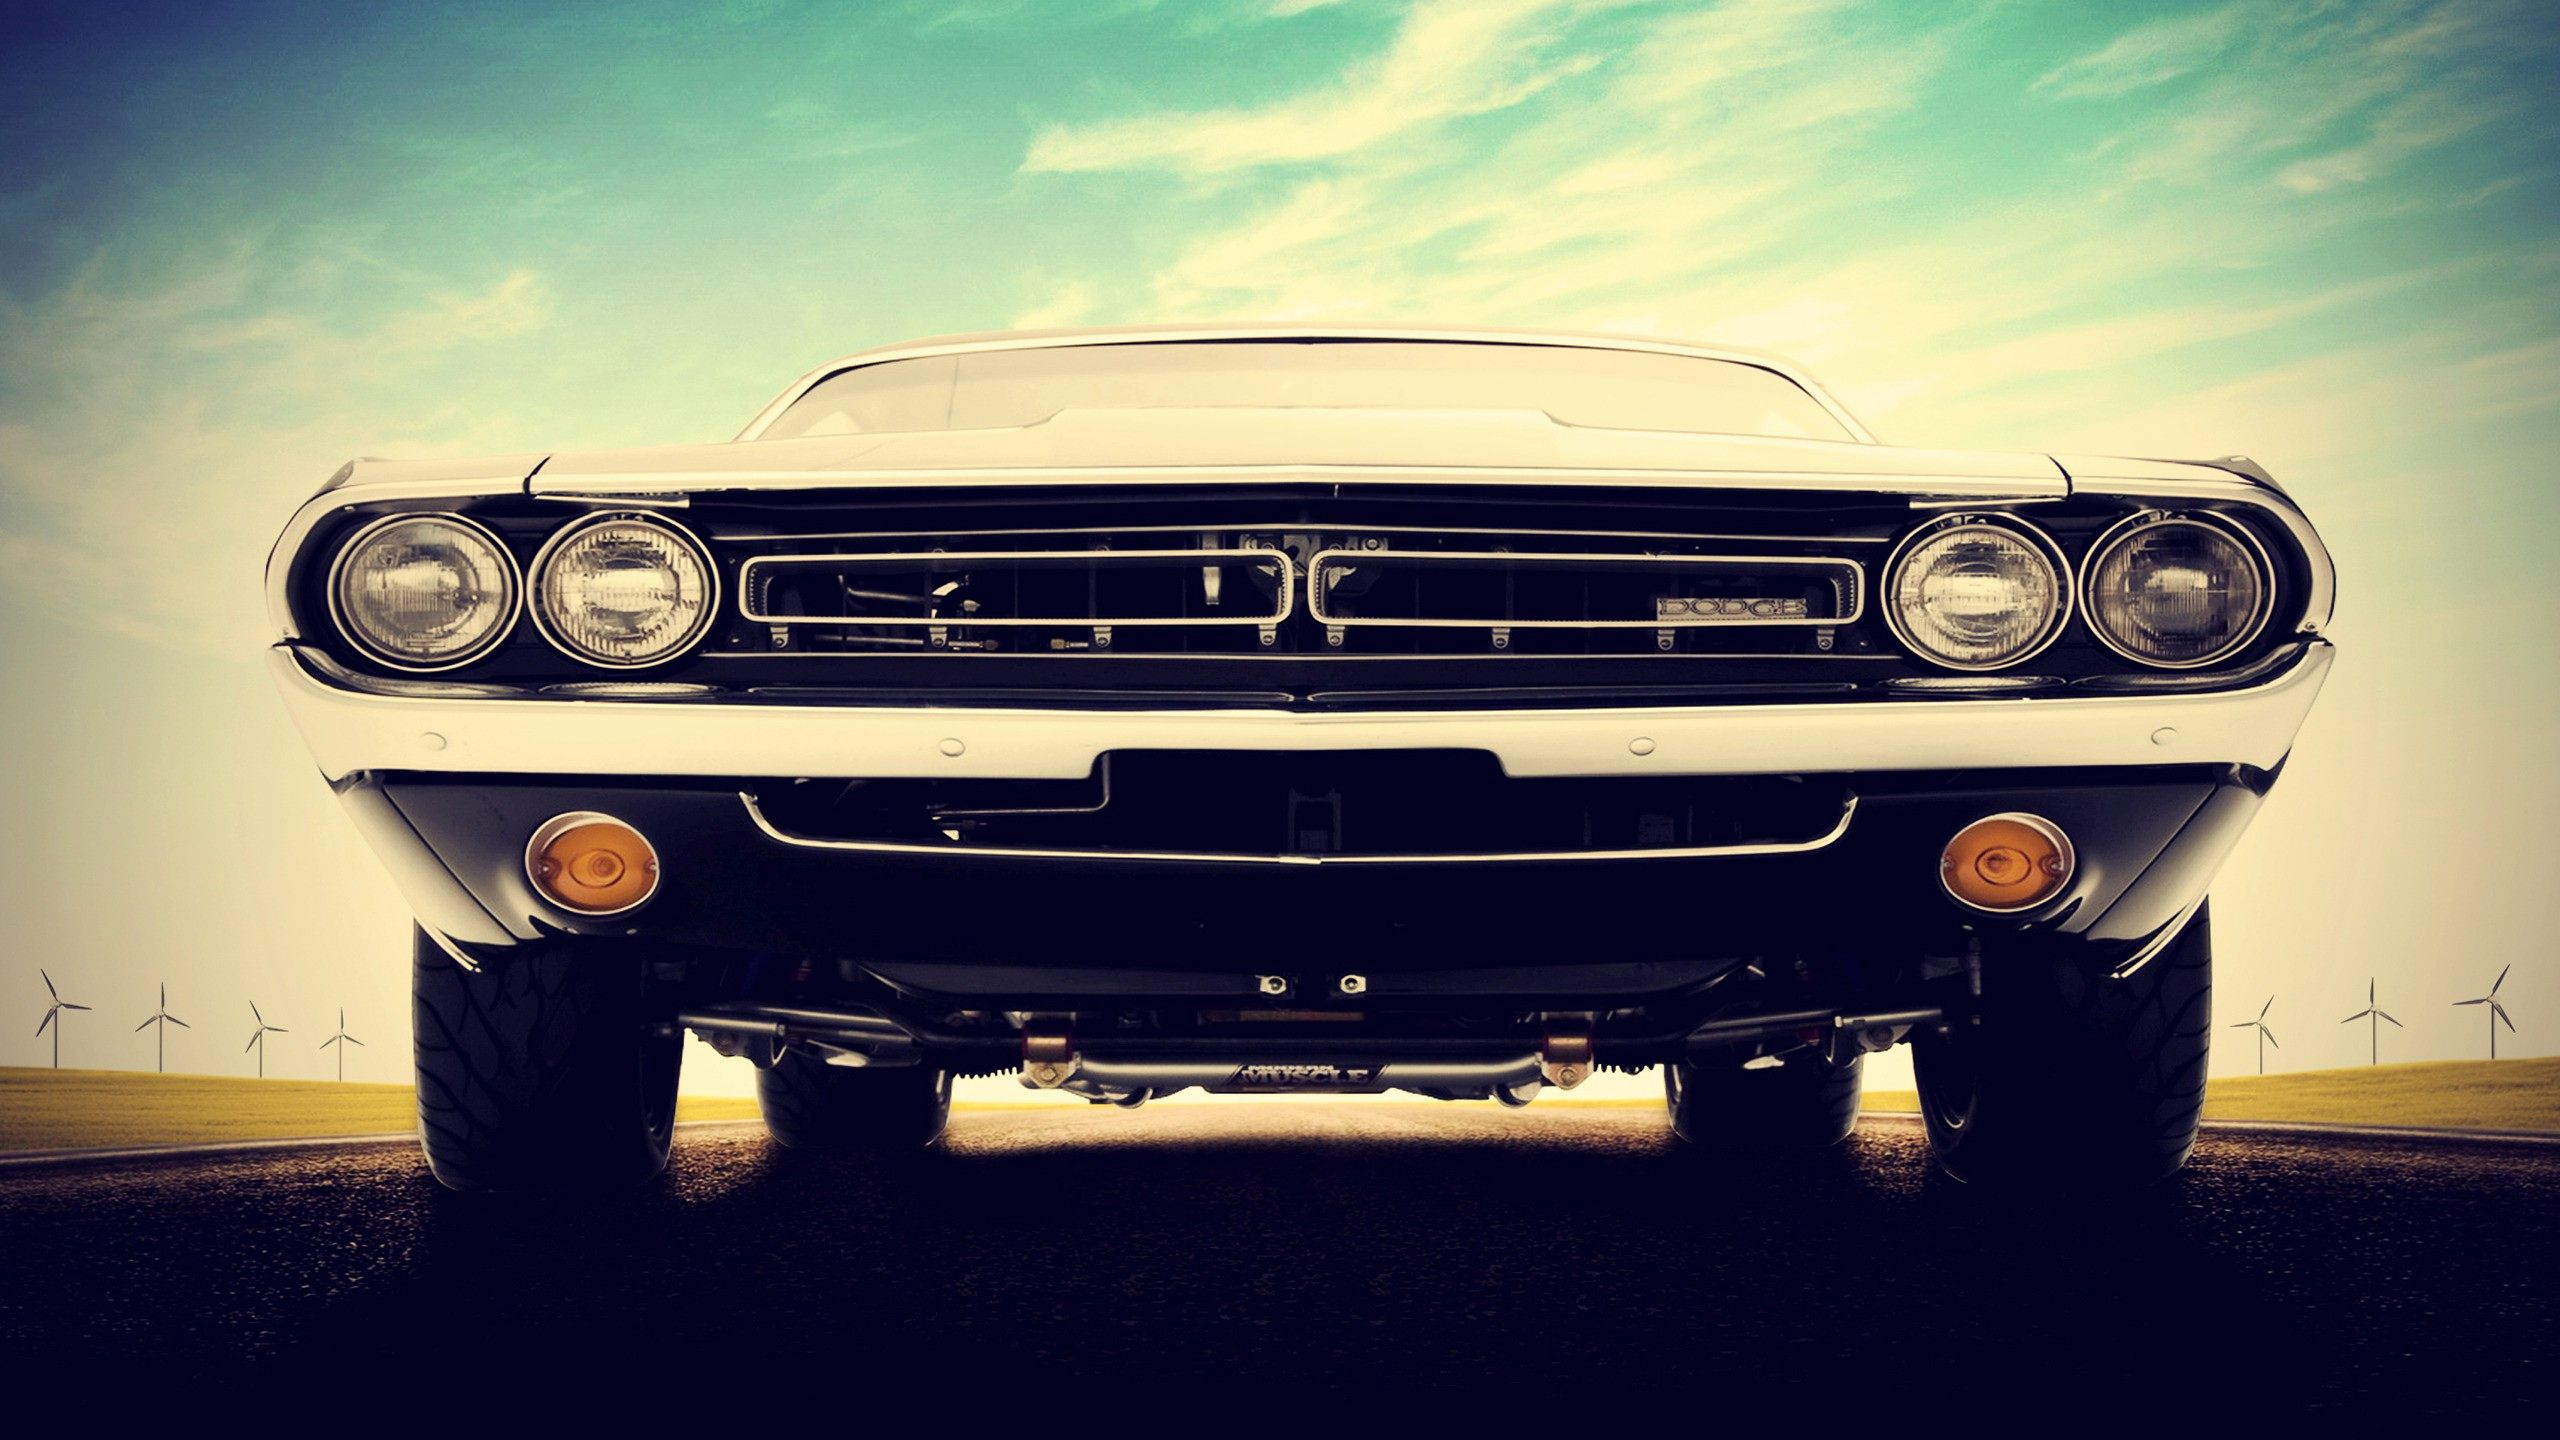 Dodge Muscle Car Wallpapers Top Free Dodge Muscle Car Backgrounds